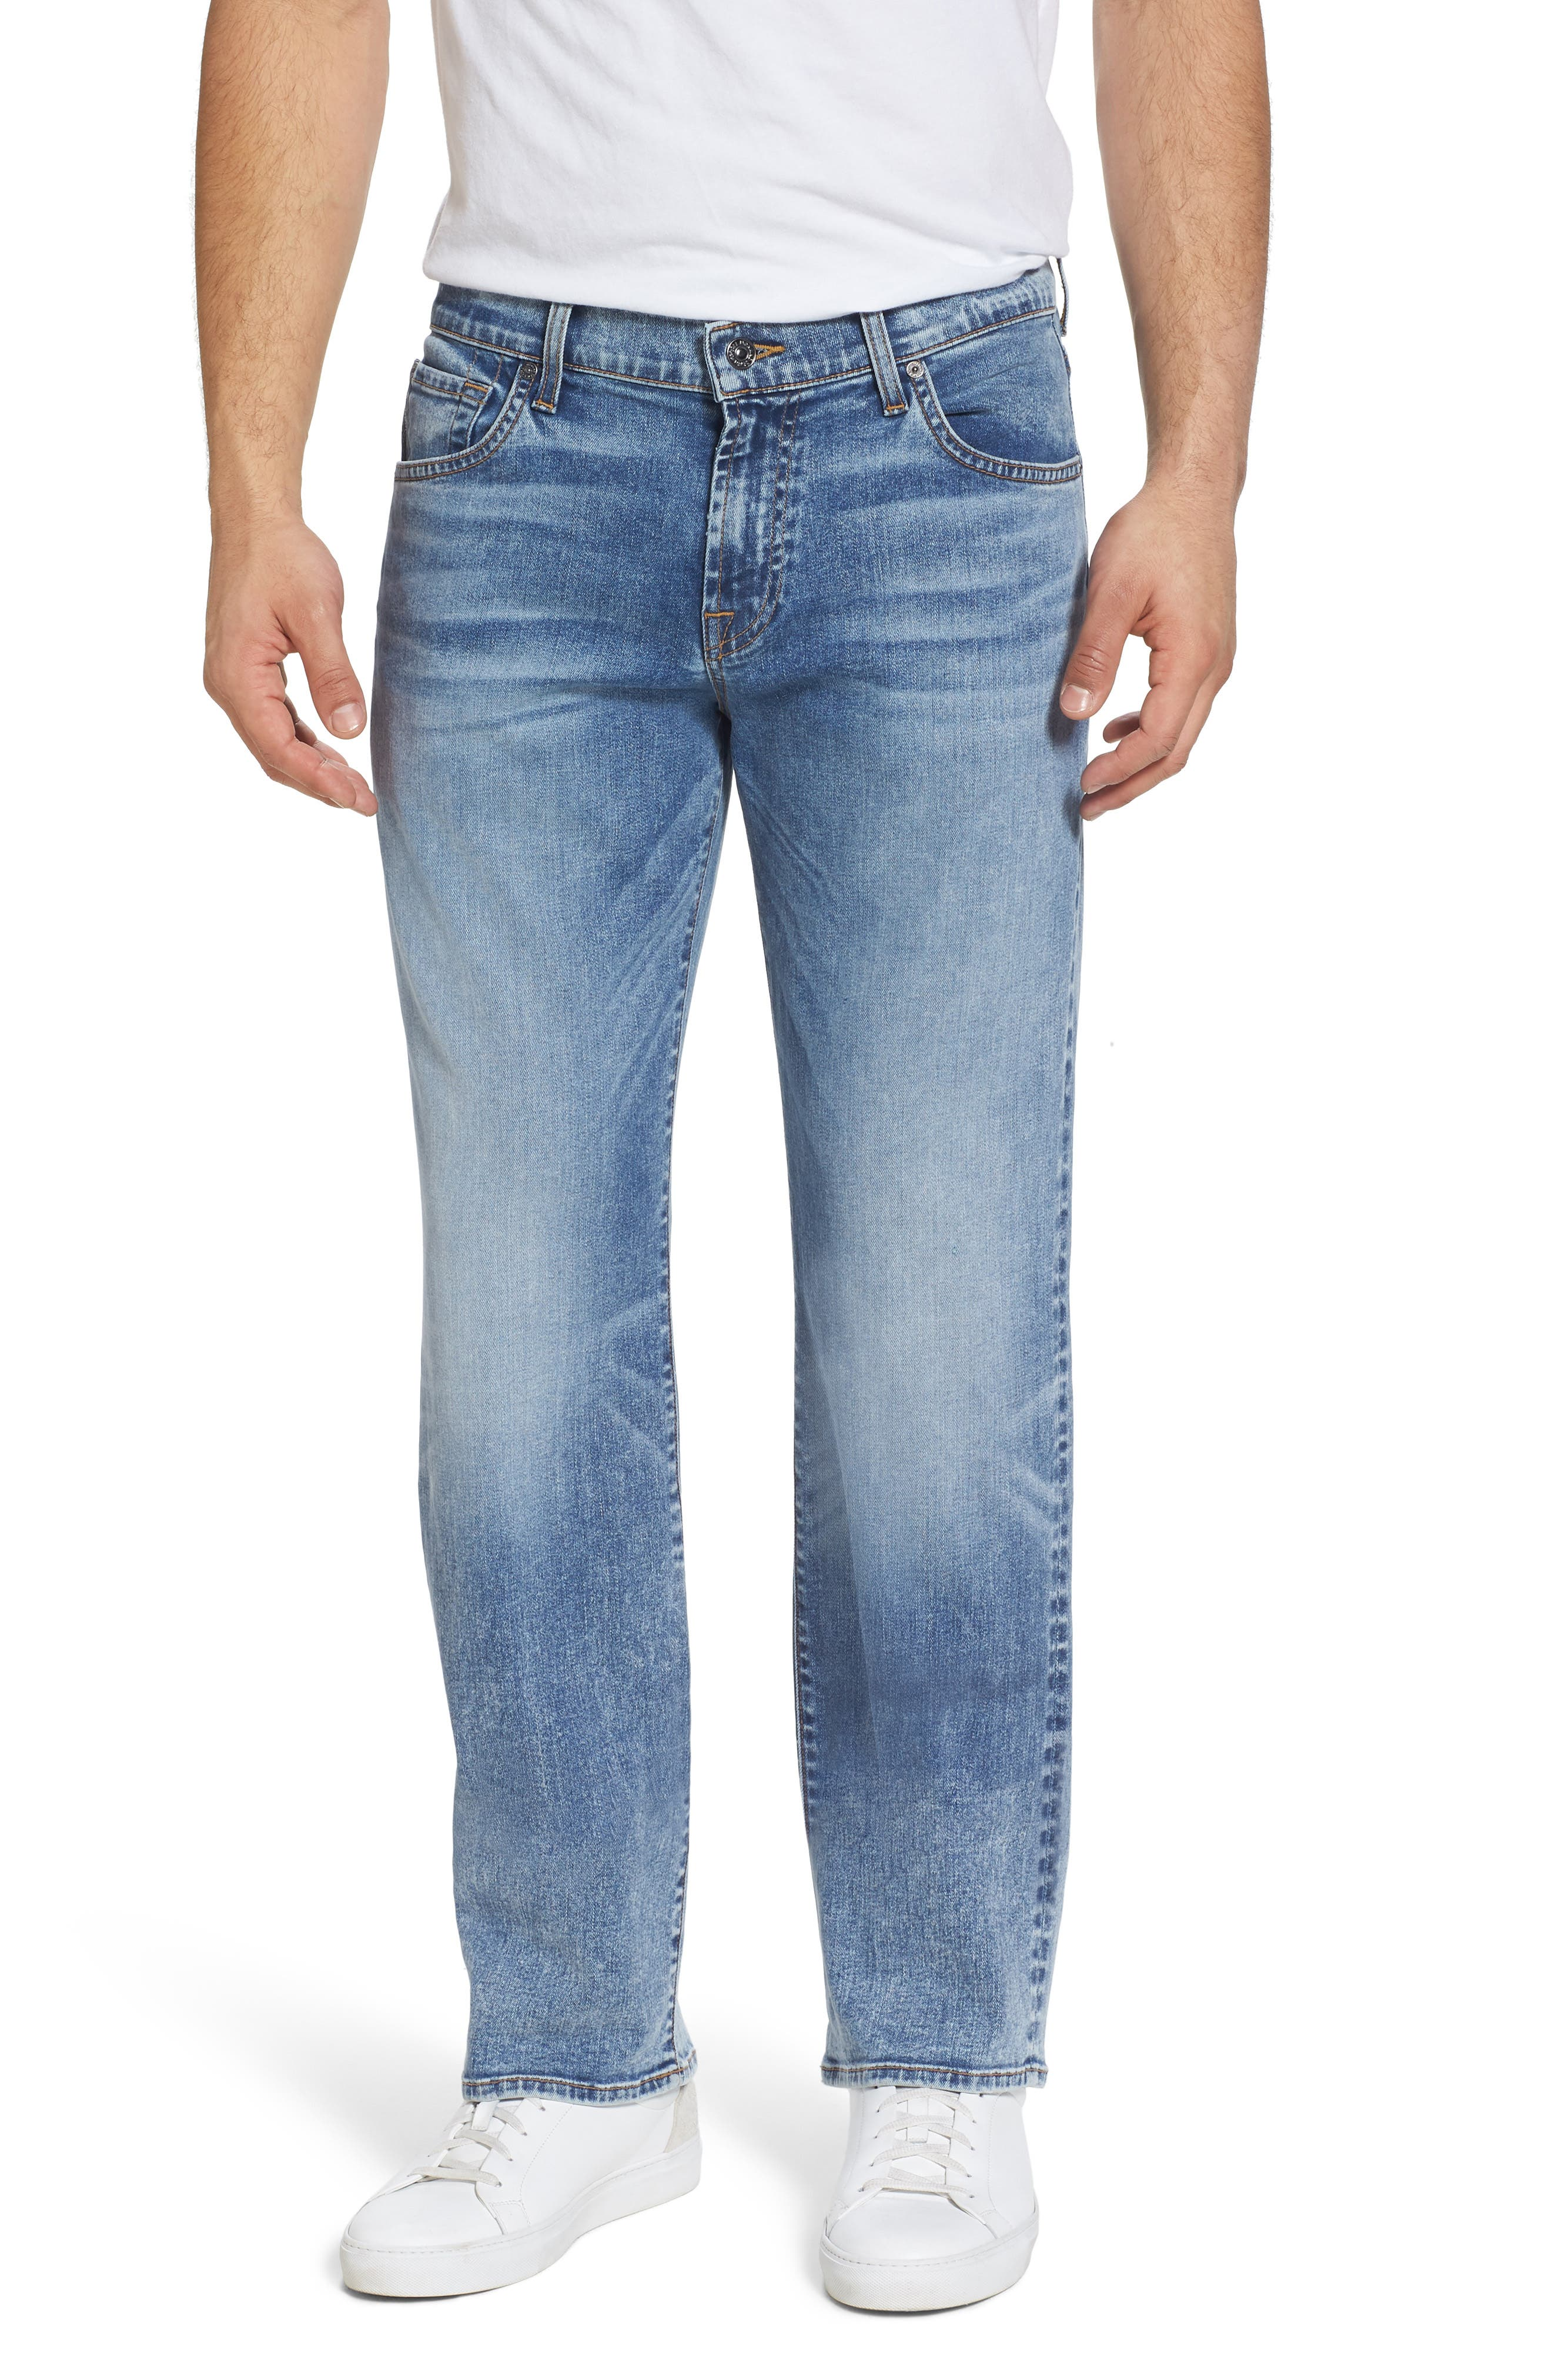 Austyn - Luxe Performance Relaxed Fit Jeans,                             Main thumbnail 1, color,                             404